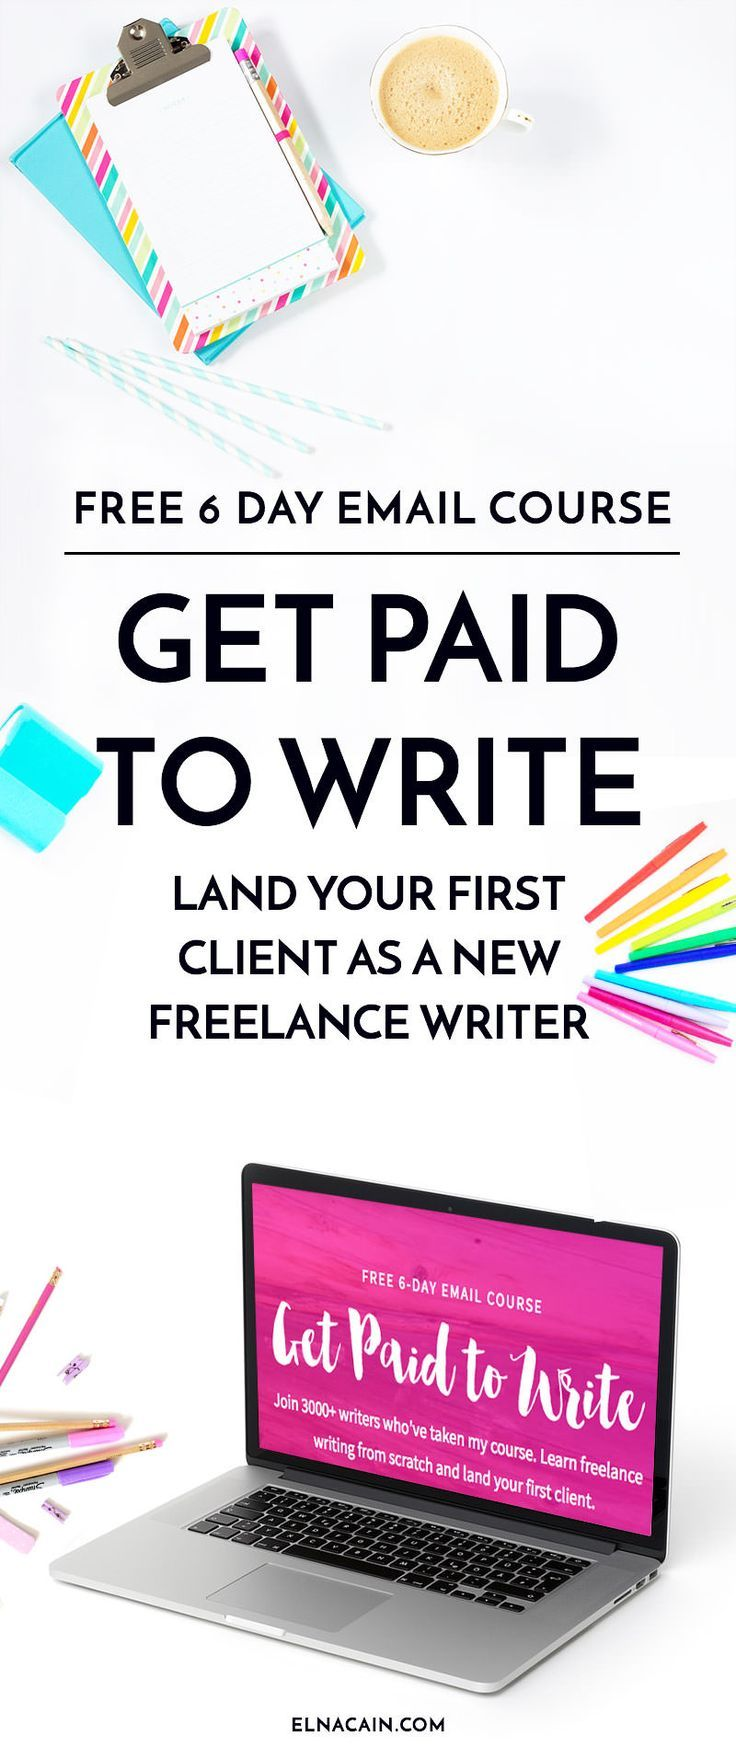 paid lance writing tesorio wants to help vendors and lancers  best ideas about writing jobs creative writing 17 best ideas about writing jobs creative writing creative